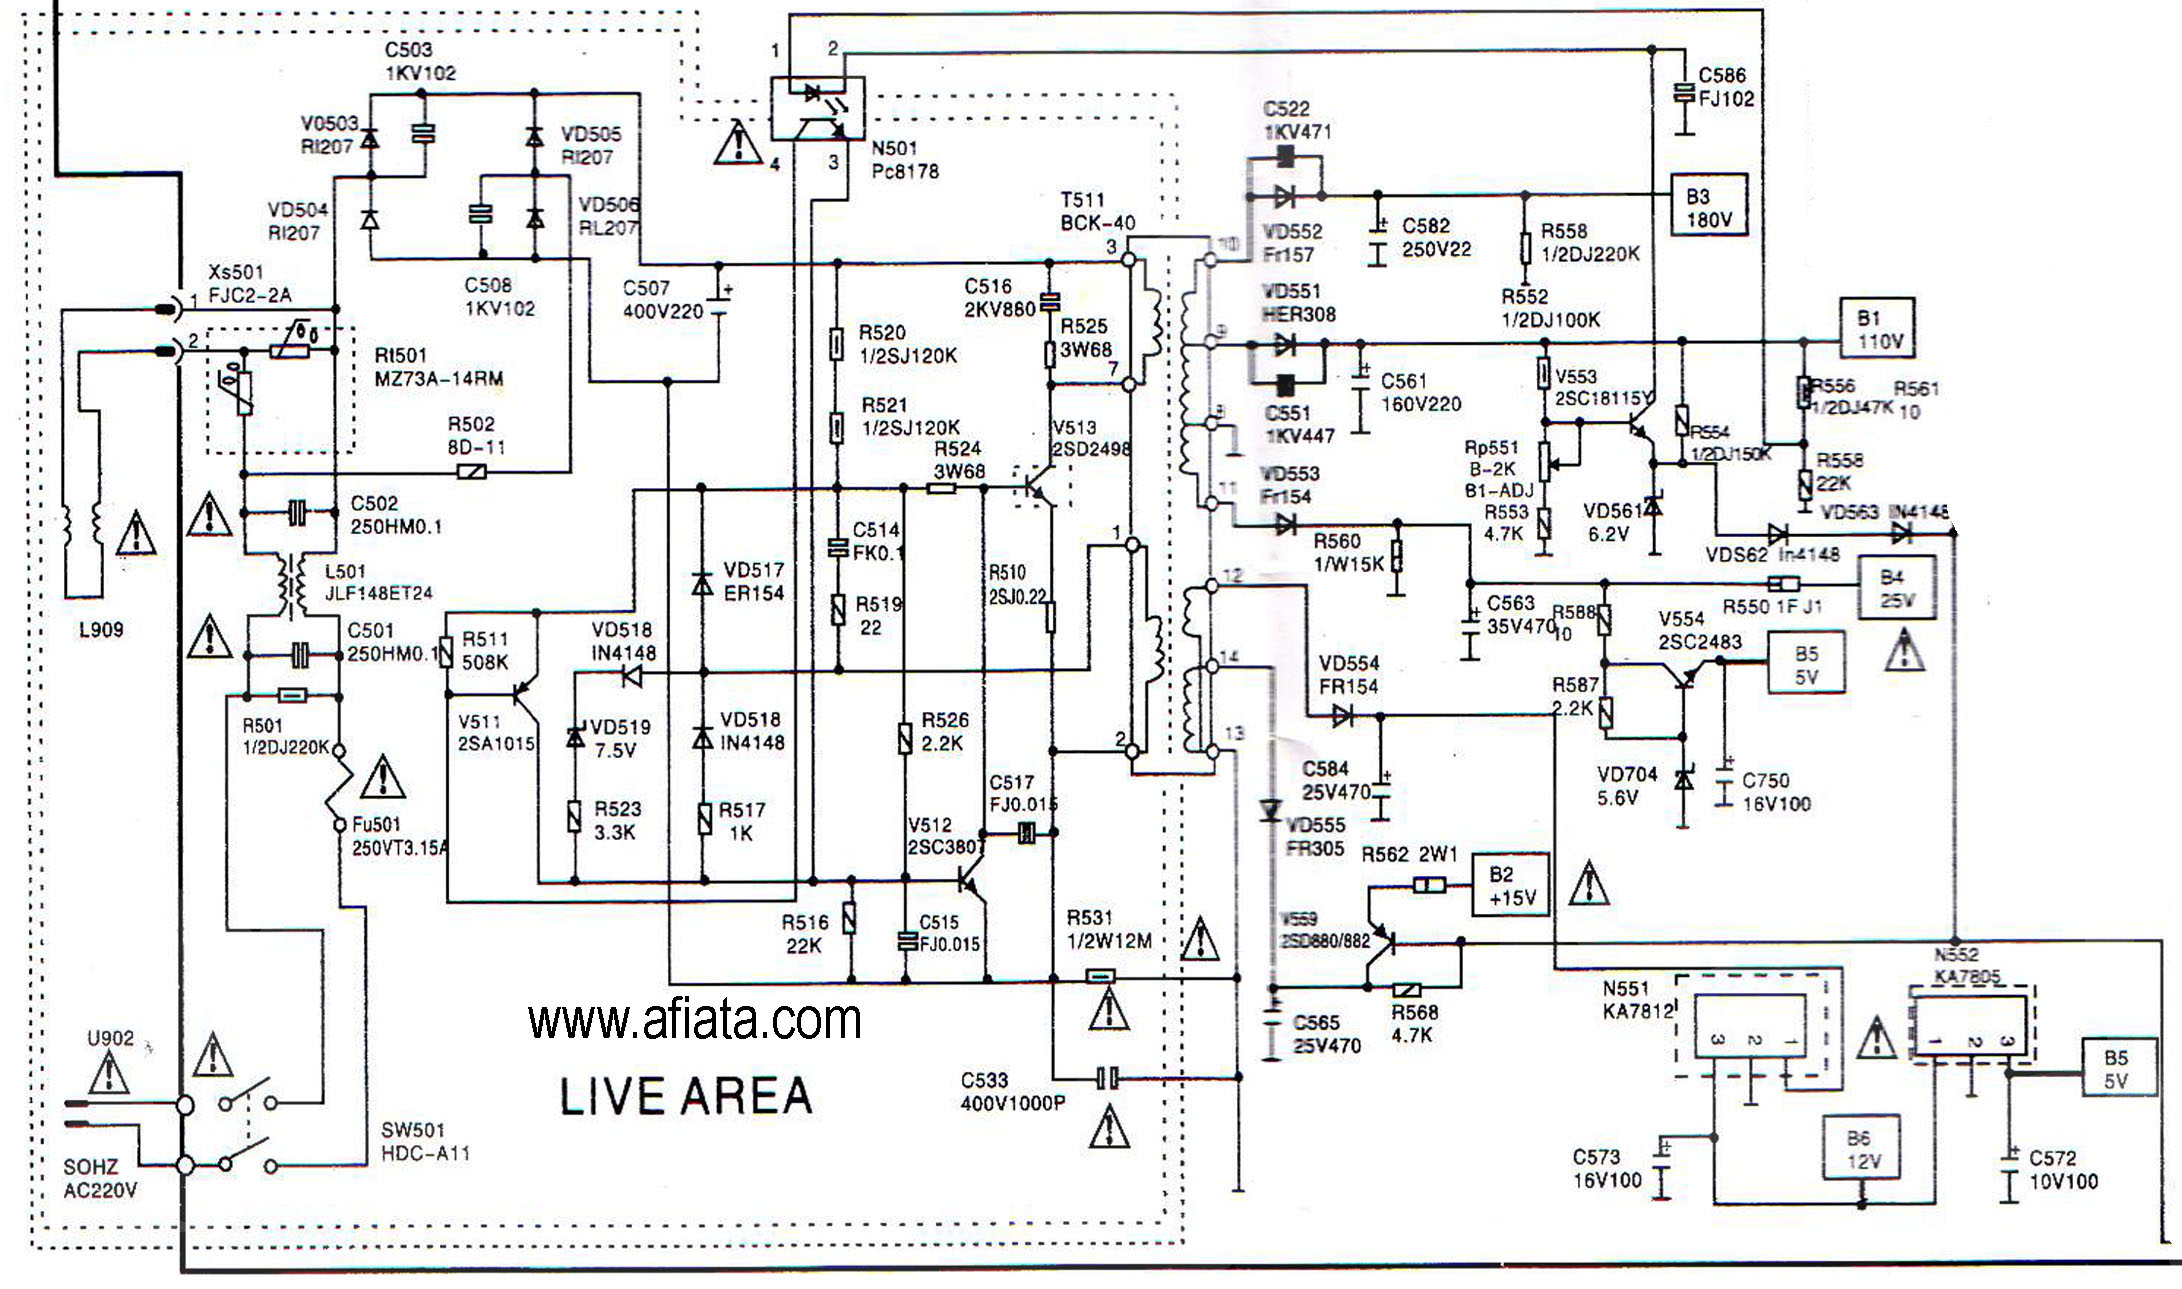 Warn 8274 Wiring Diagram moreover Warn Winch Controller Wiring Diagram besides Maytag Dryer Wiring Diagram moreover 2007 Honda Rancher 420 Wiring Diagram 2008 Recon 3 Snapshoot Adorable 250 Dolgular 2005 Kipipo 2 likewise 3 Speed Blower Motor Wiring Diagram. on warn winch switch wiring